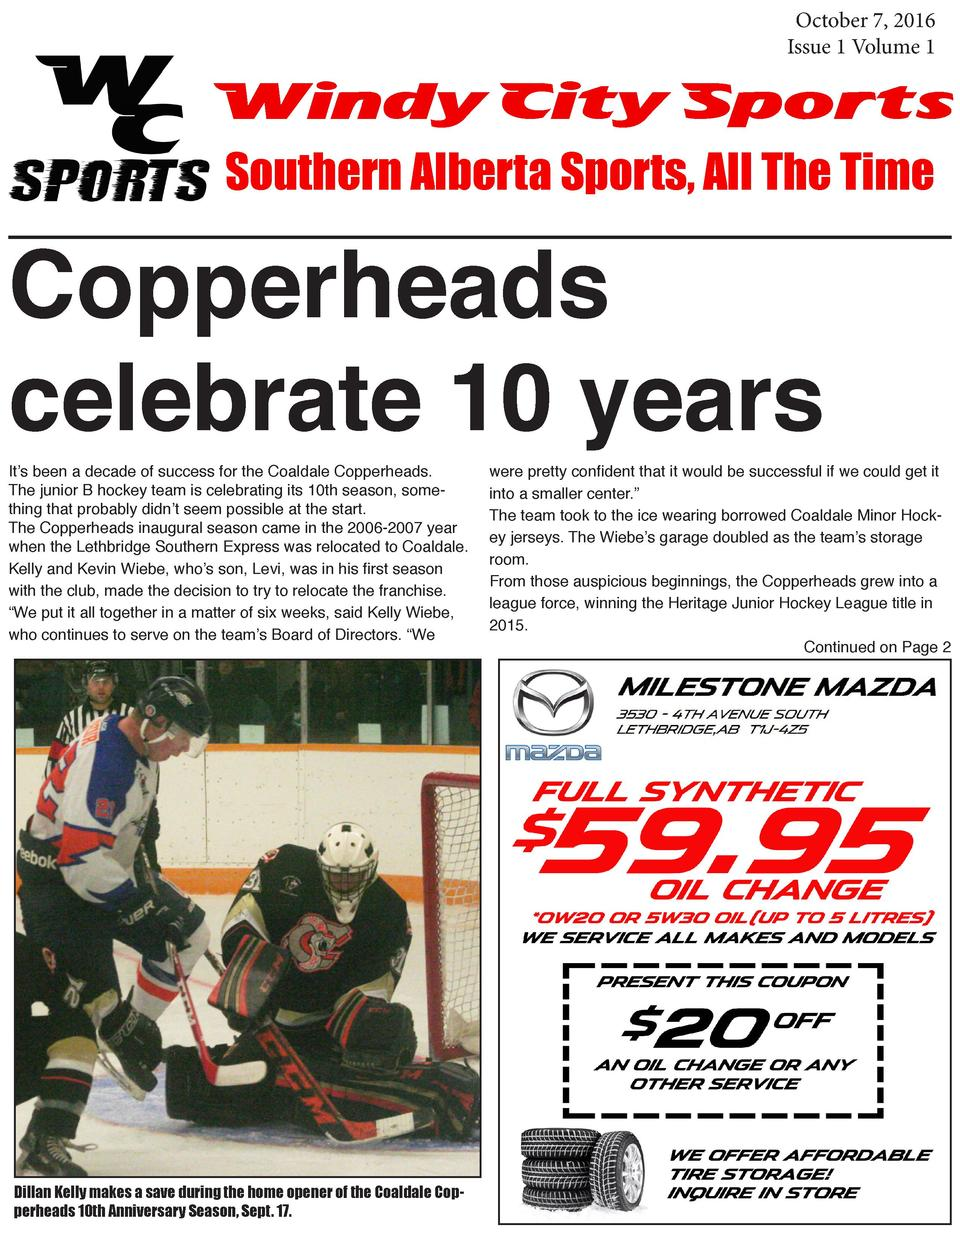 October 7, 2016 Issue 1 Volume 1  Windy City Sports Southern Alberta Sports, All The Time  Copperheads celebrate 10 years ...